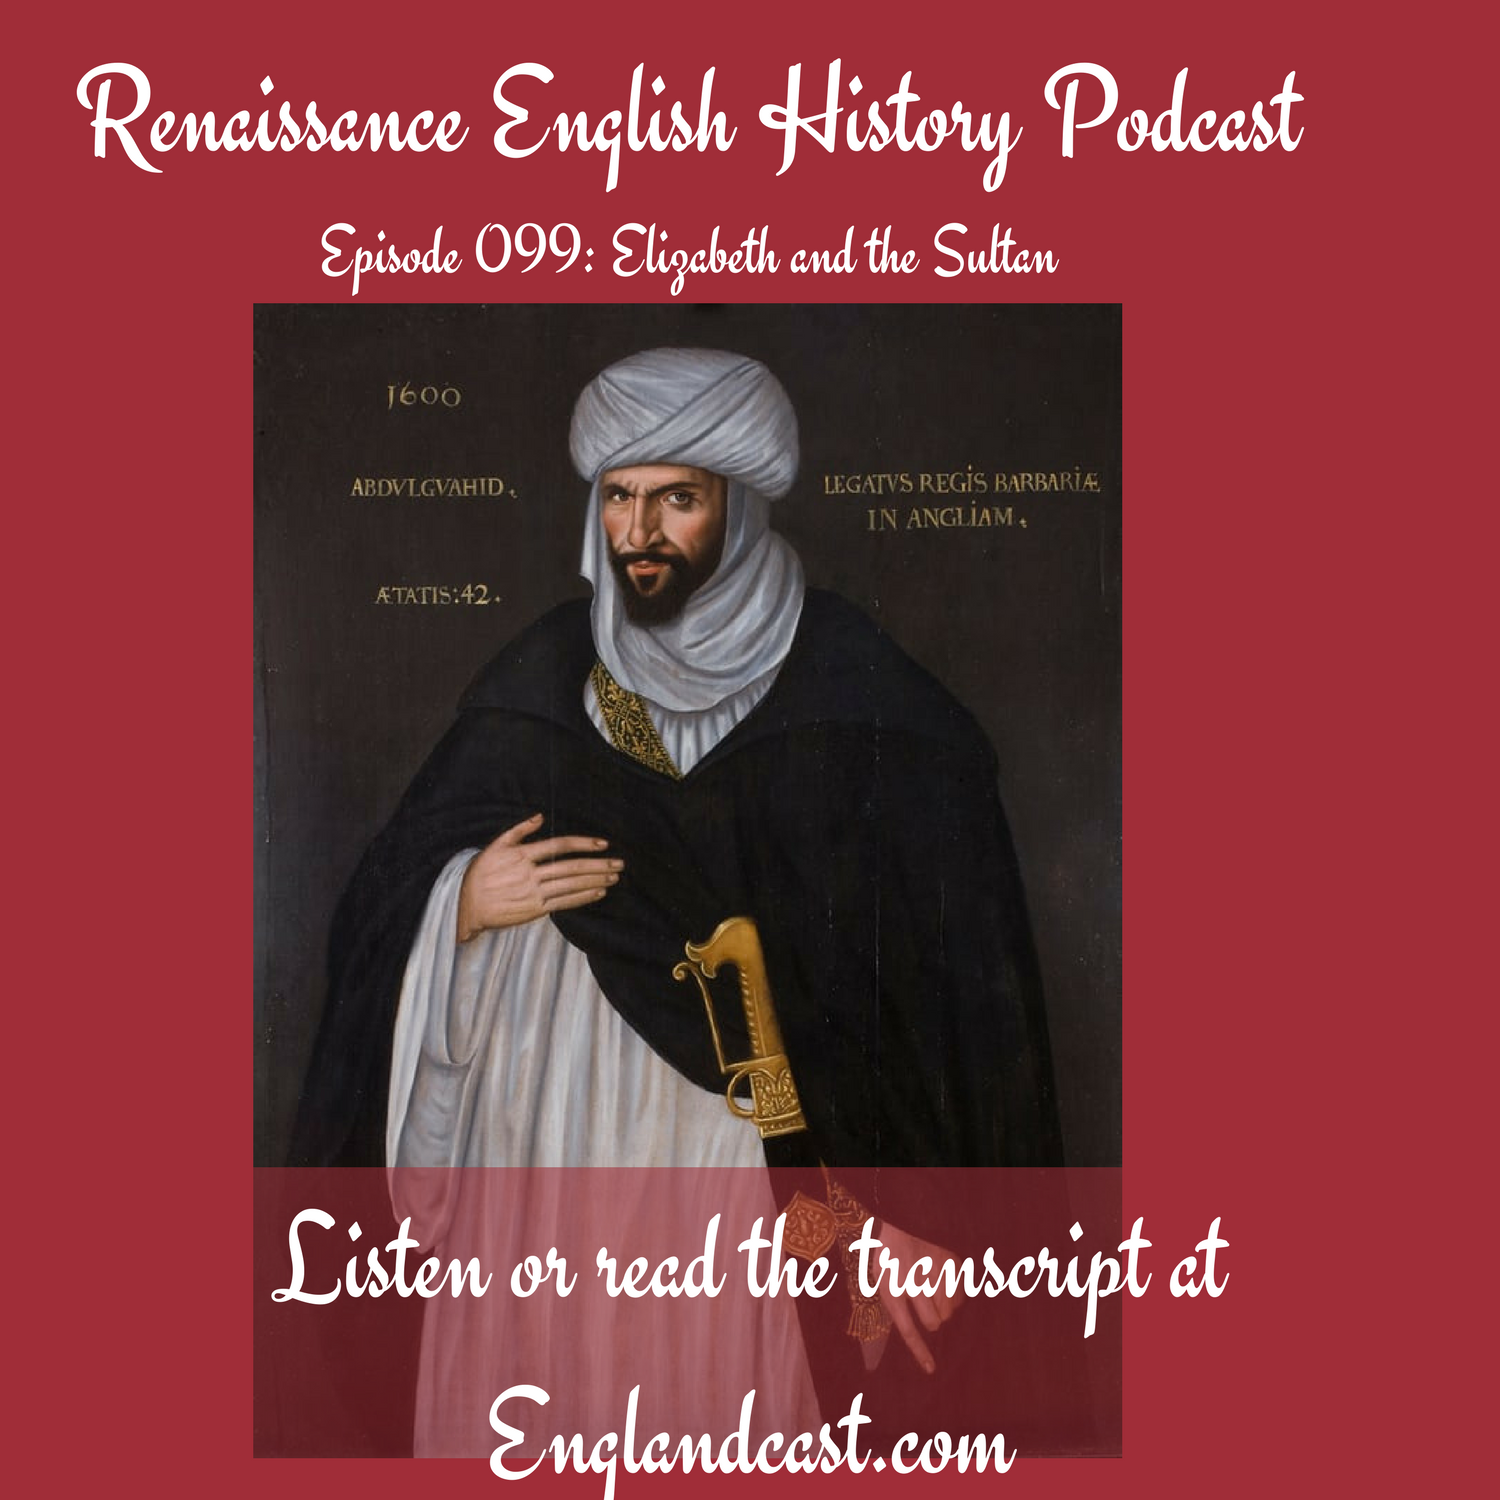 Episode 099: Elizabeth and the Sultan